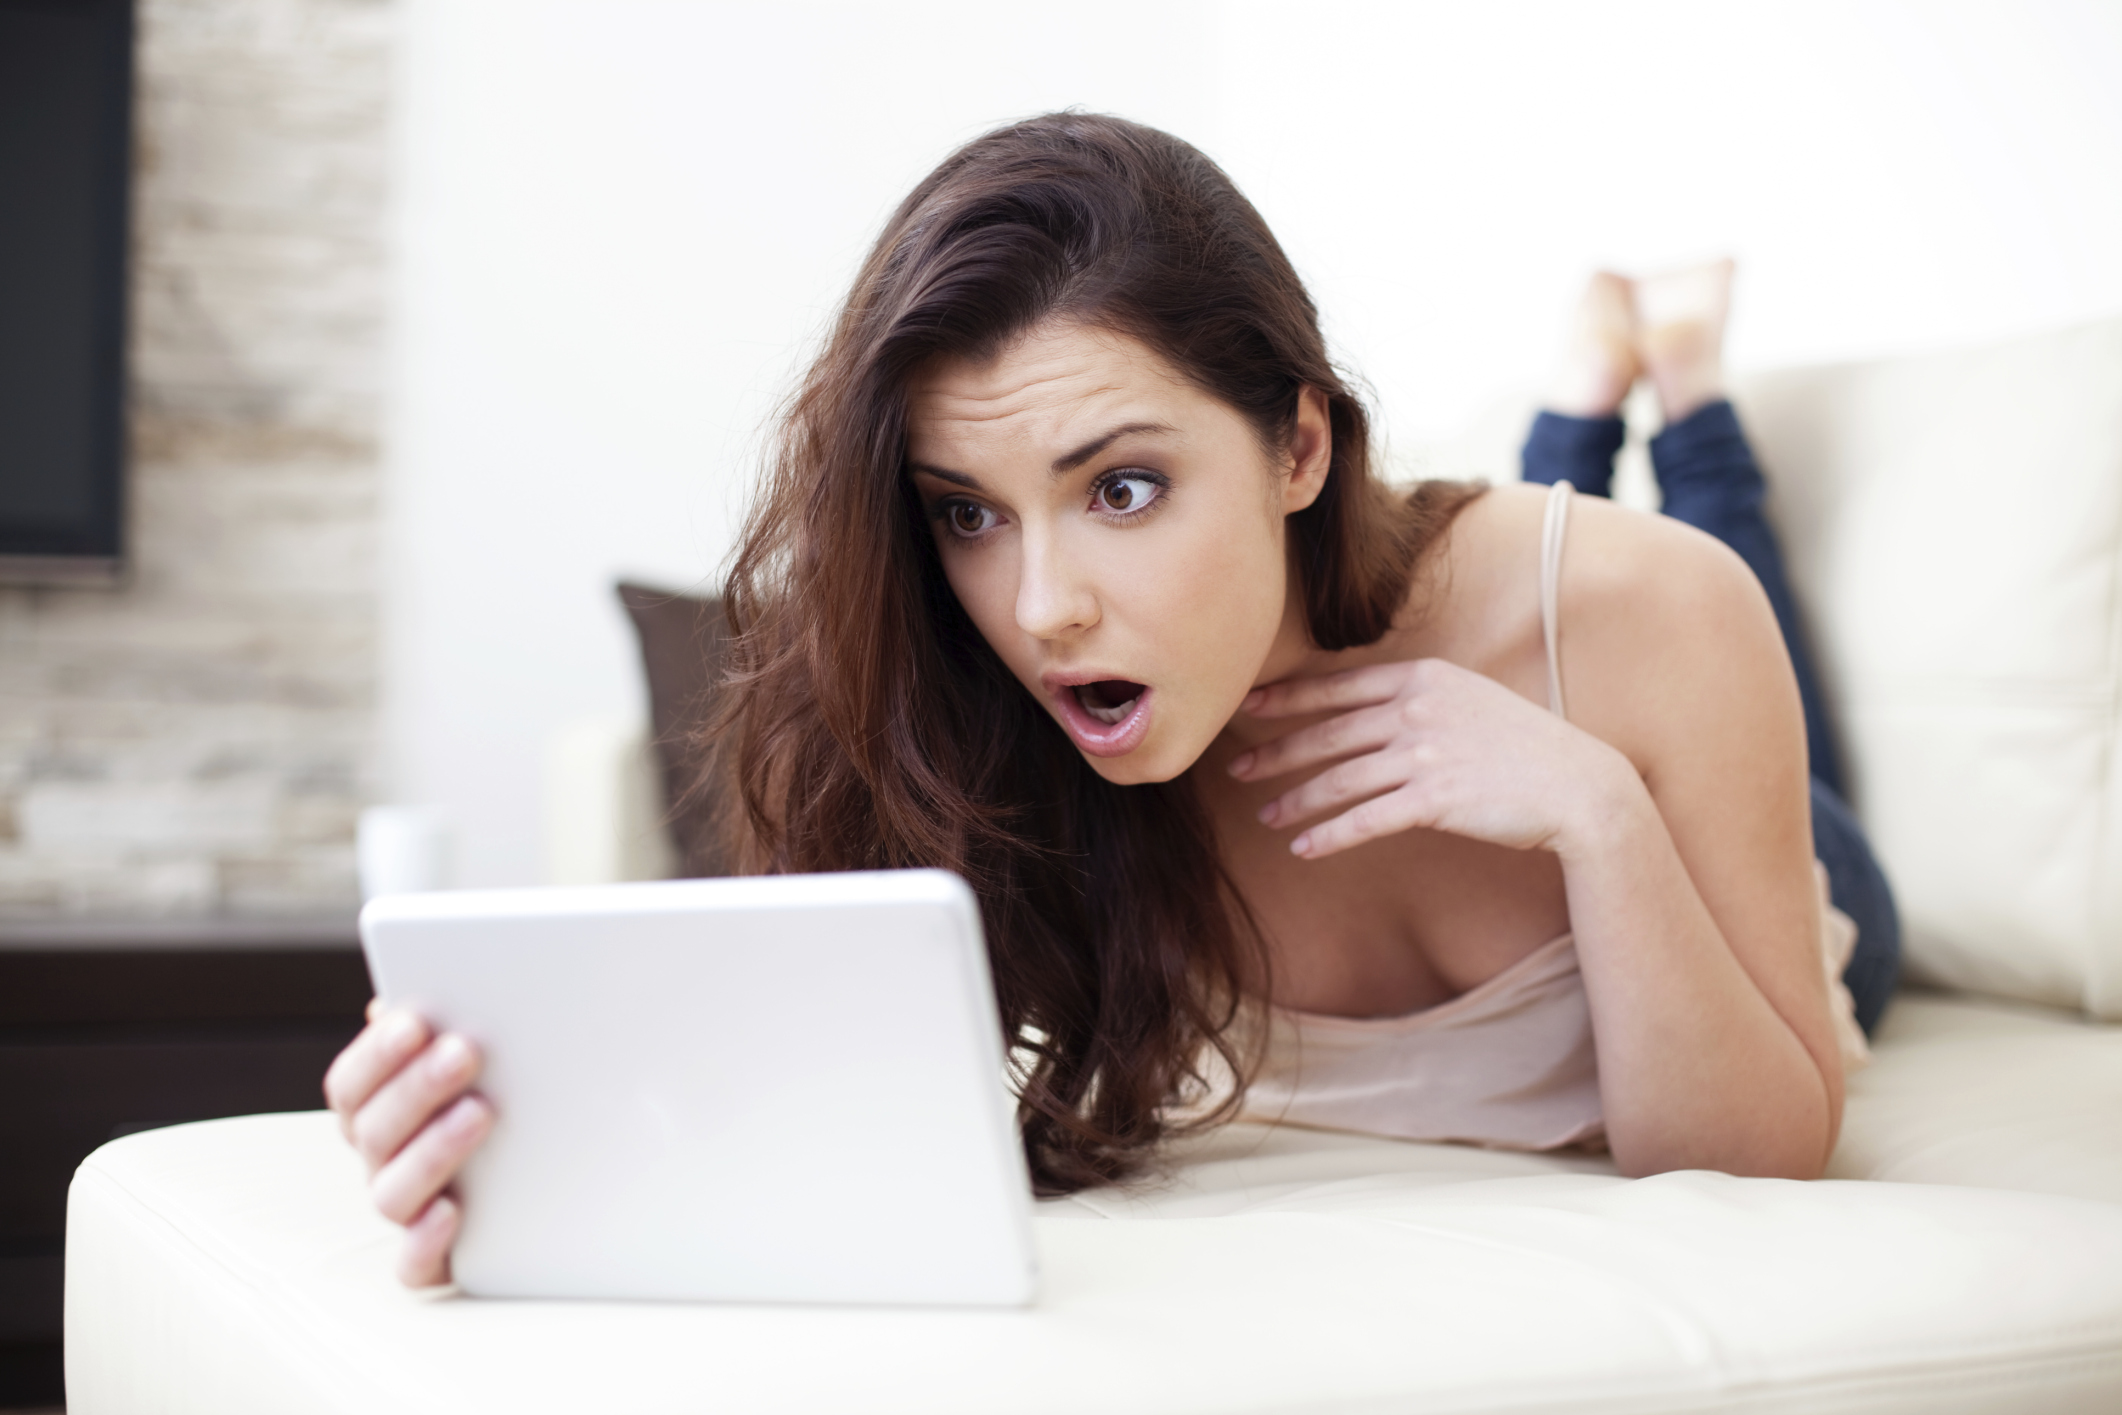 QUIZ: Are you in danger of being unfriended?